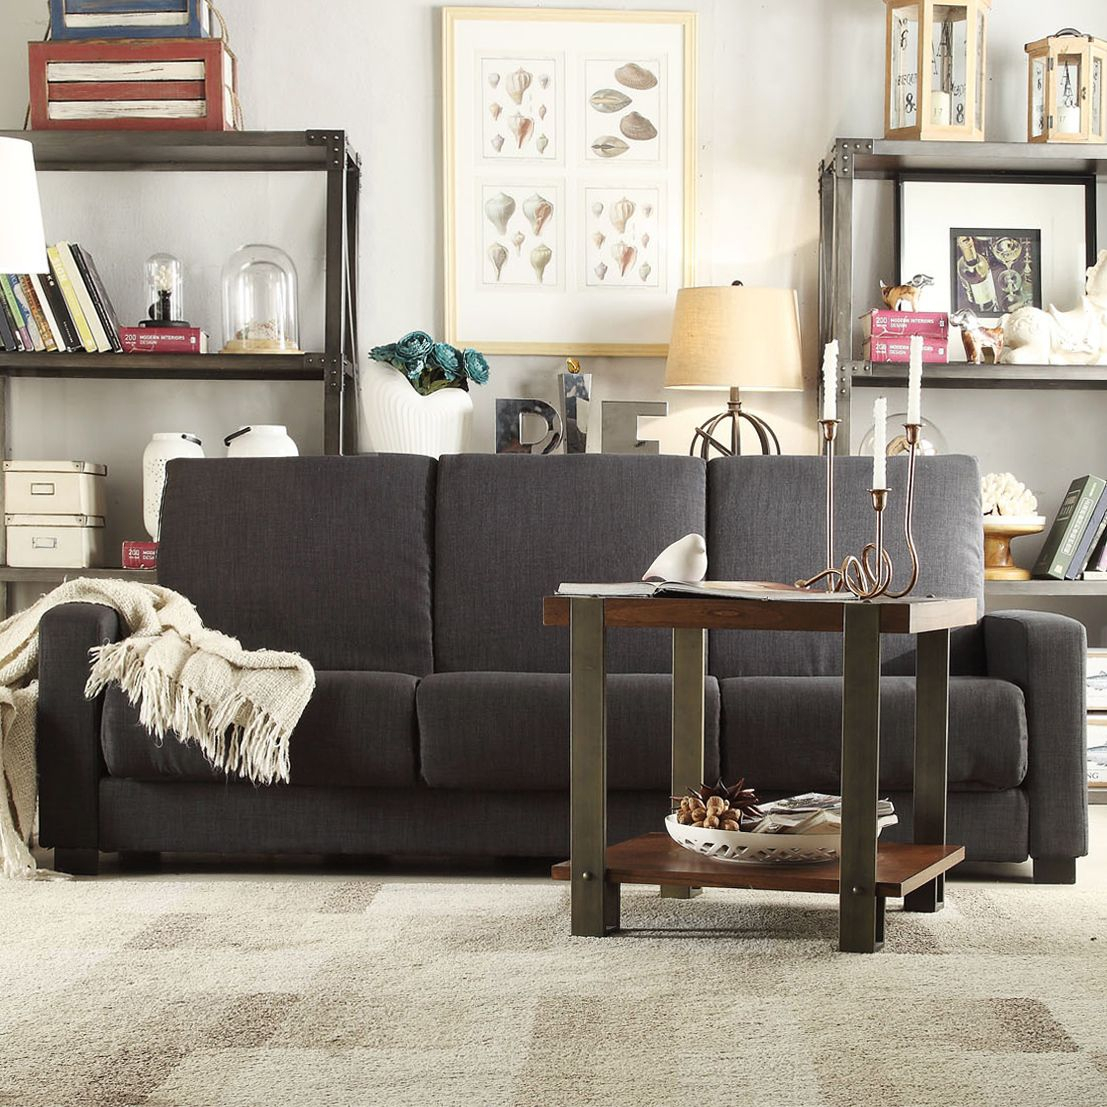 Overstock: Online Shopping – Bedding, Furniture Throughout Onderdonk Faux Leather Convertible Chairs (View 13 of 15)